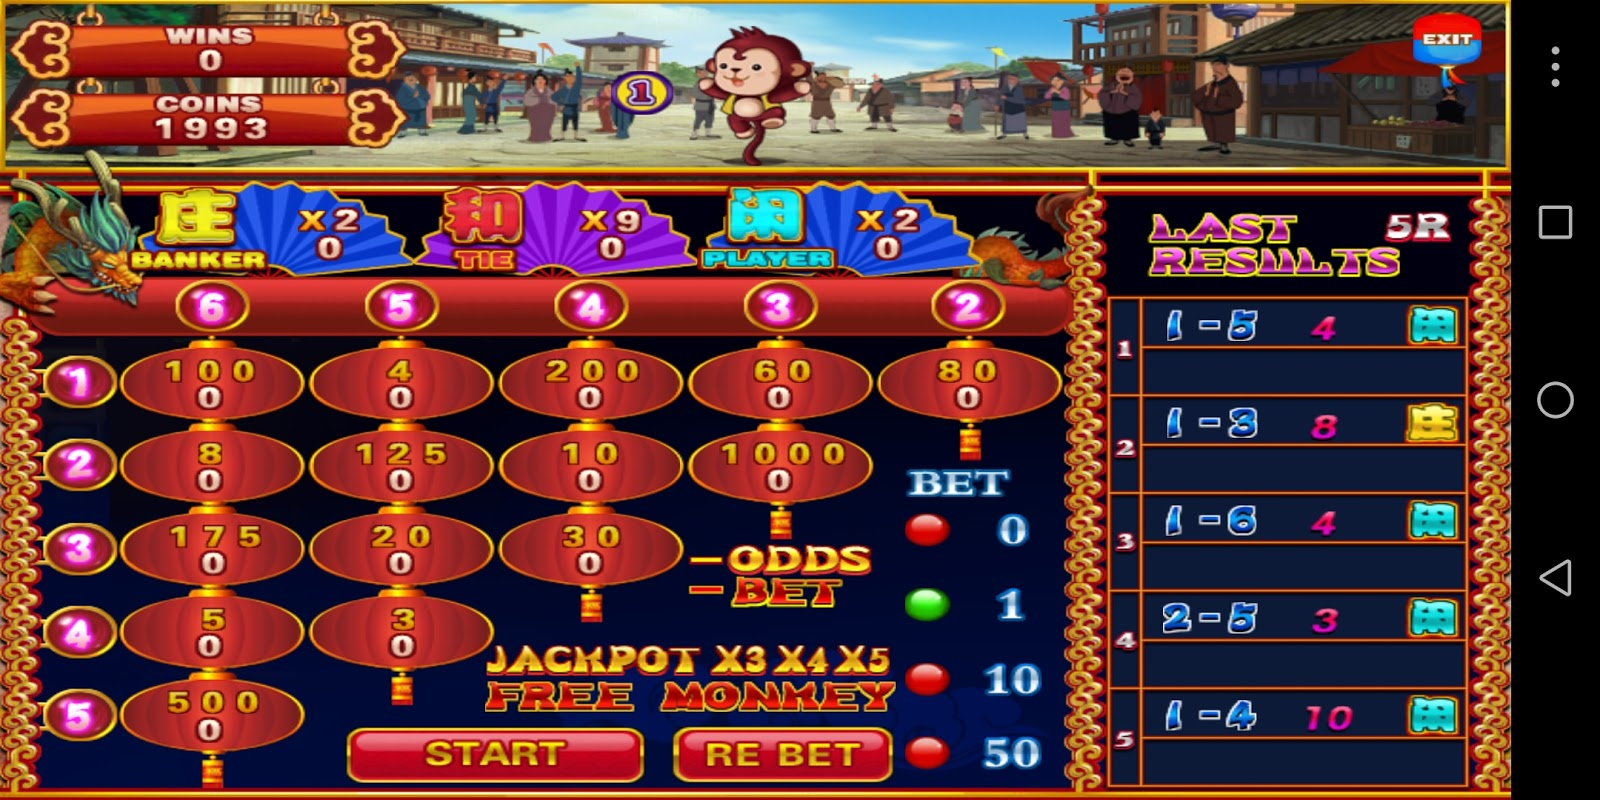 Free spins to win money